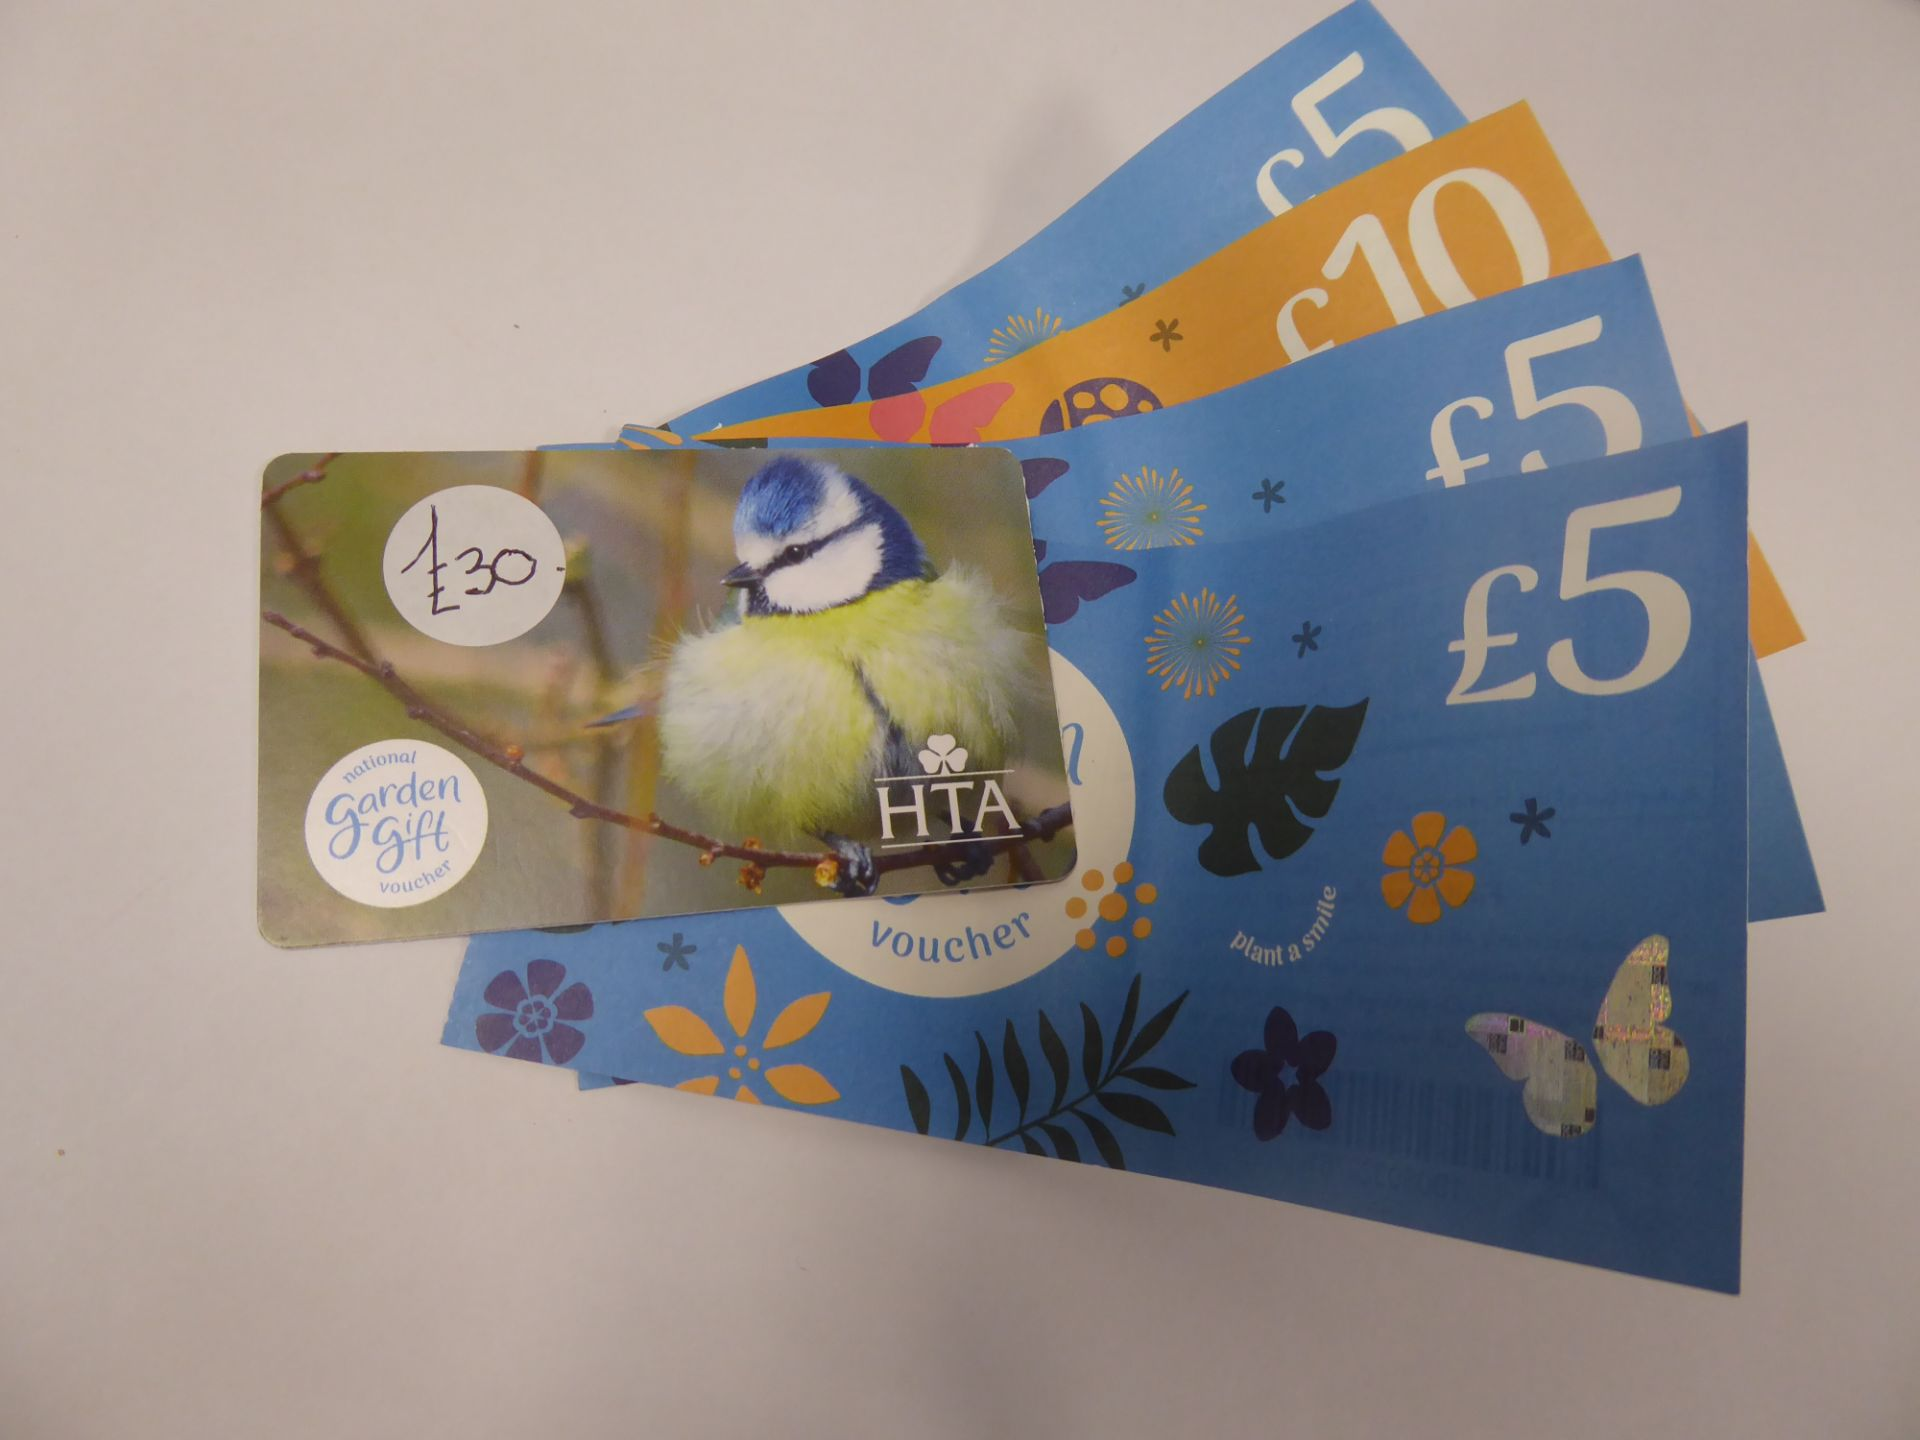 National Garden (x3) - Total face value £55